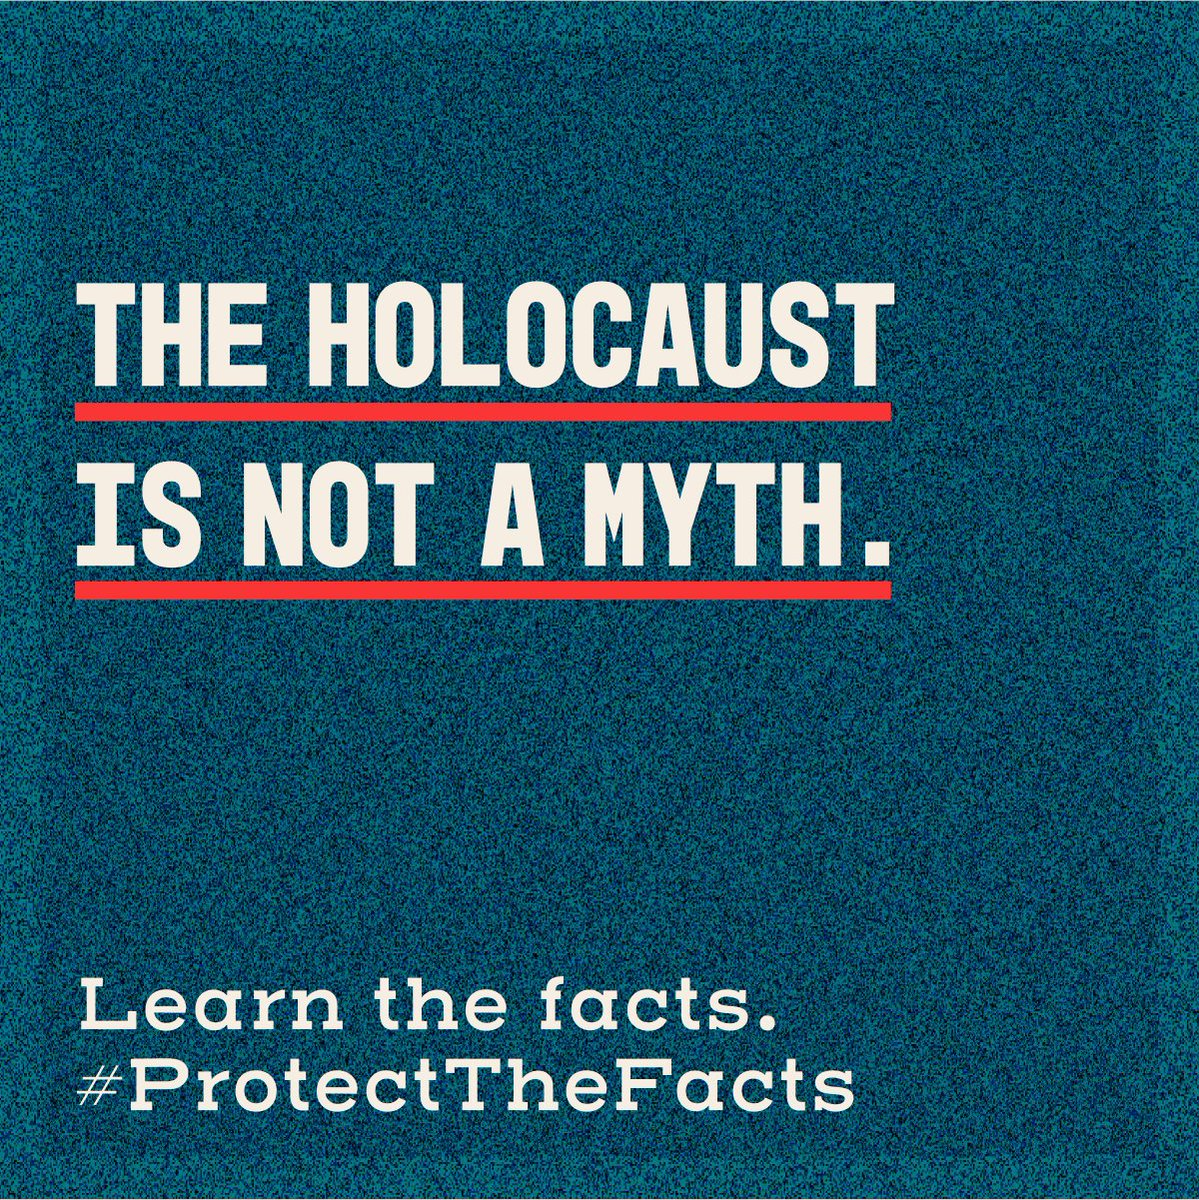 When Holocaust distortion is left unchallenged, it can lead to Holocaust denial, antisemitism, conspiracy myths & dangerous forms of nationalism.  We can all do our part to #ProtectTheFacts about the Holocaust.